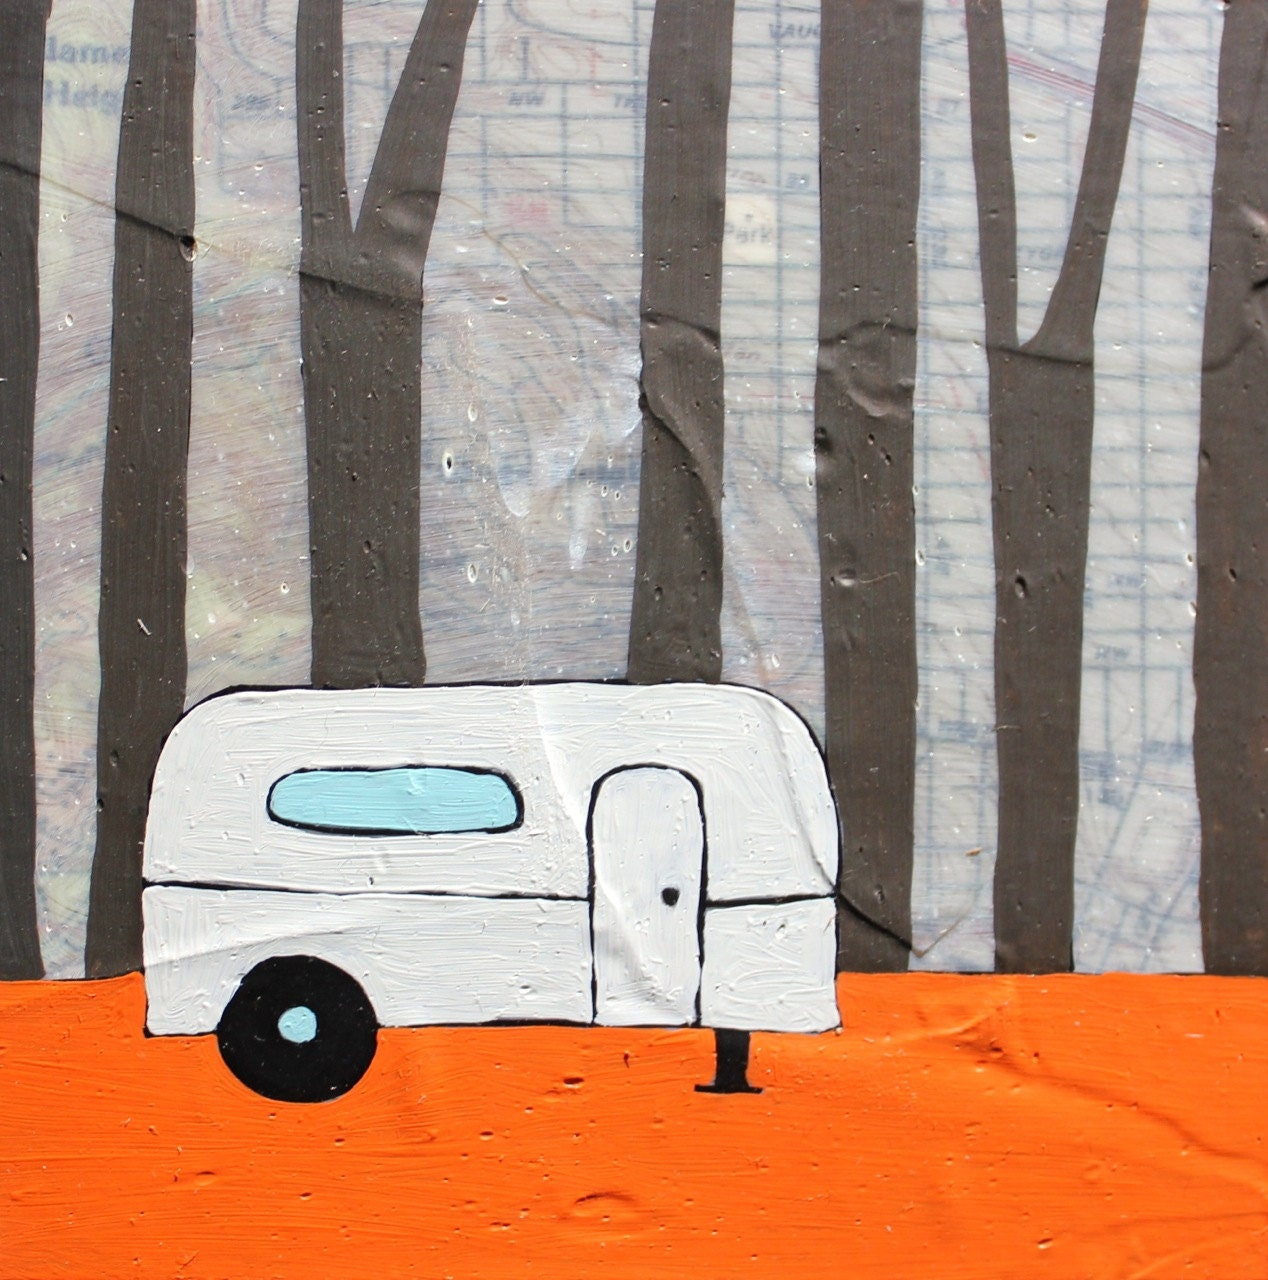 Willamette Heights - Original Map Painting 5 x 5 - Airstream trailer art - rachelaustin